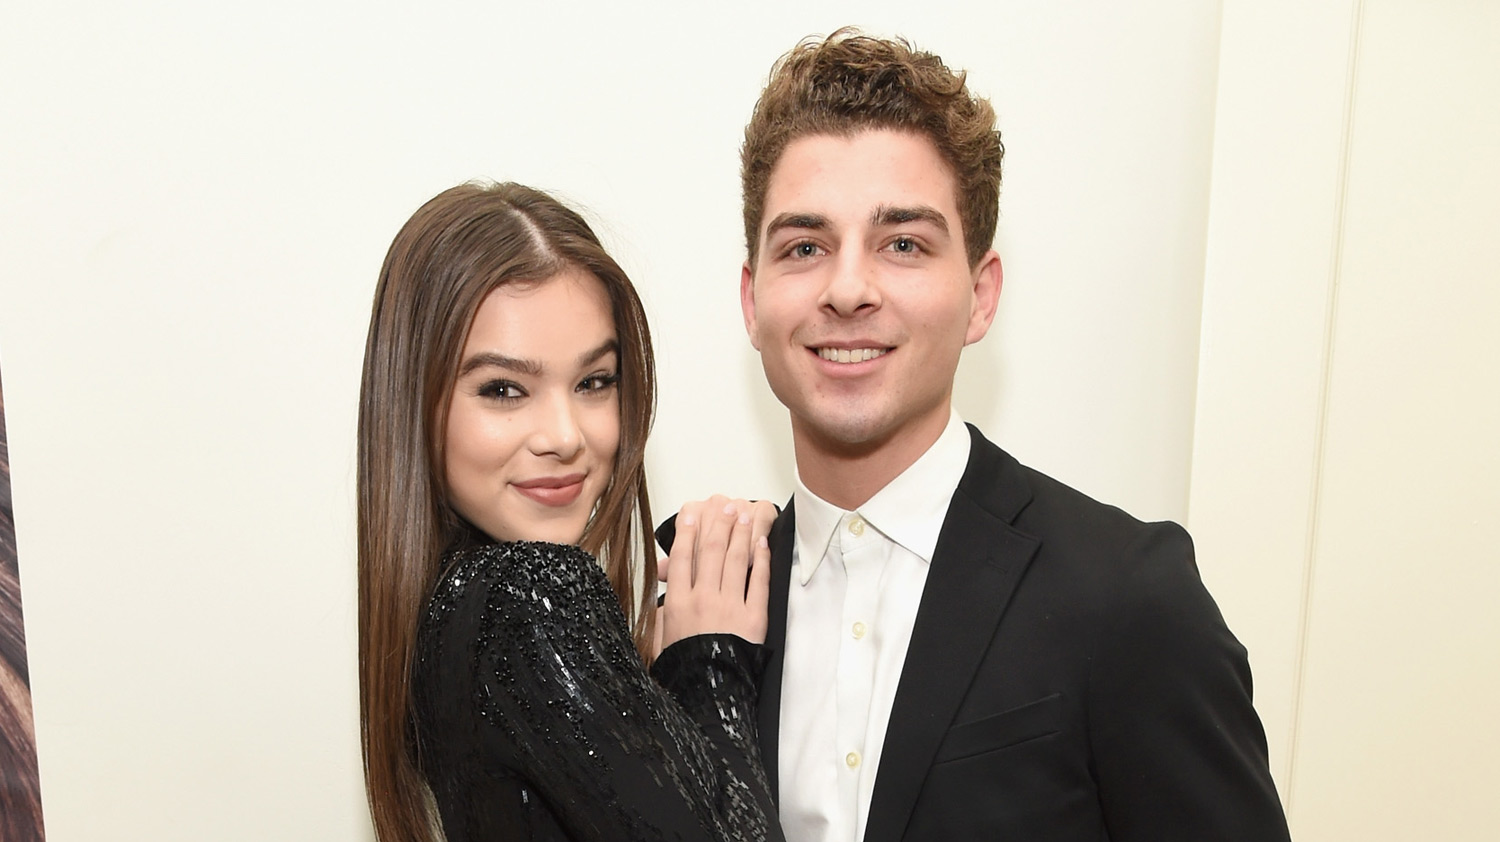 Hailee Steinfeld puts both her hands in Cameron Smoller's shoulder as they smile for a picture